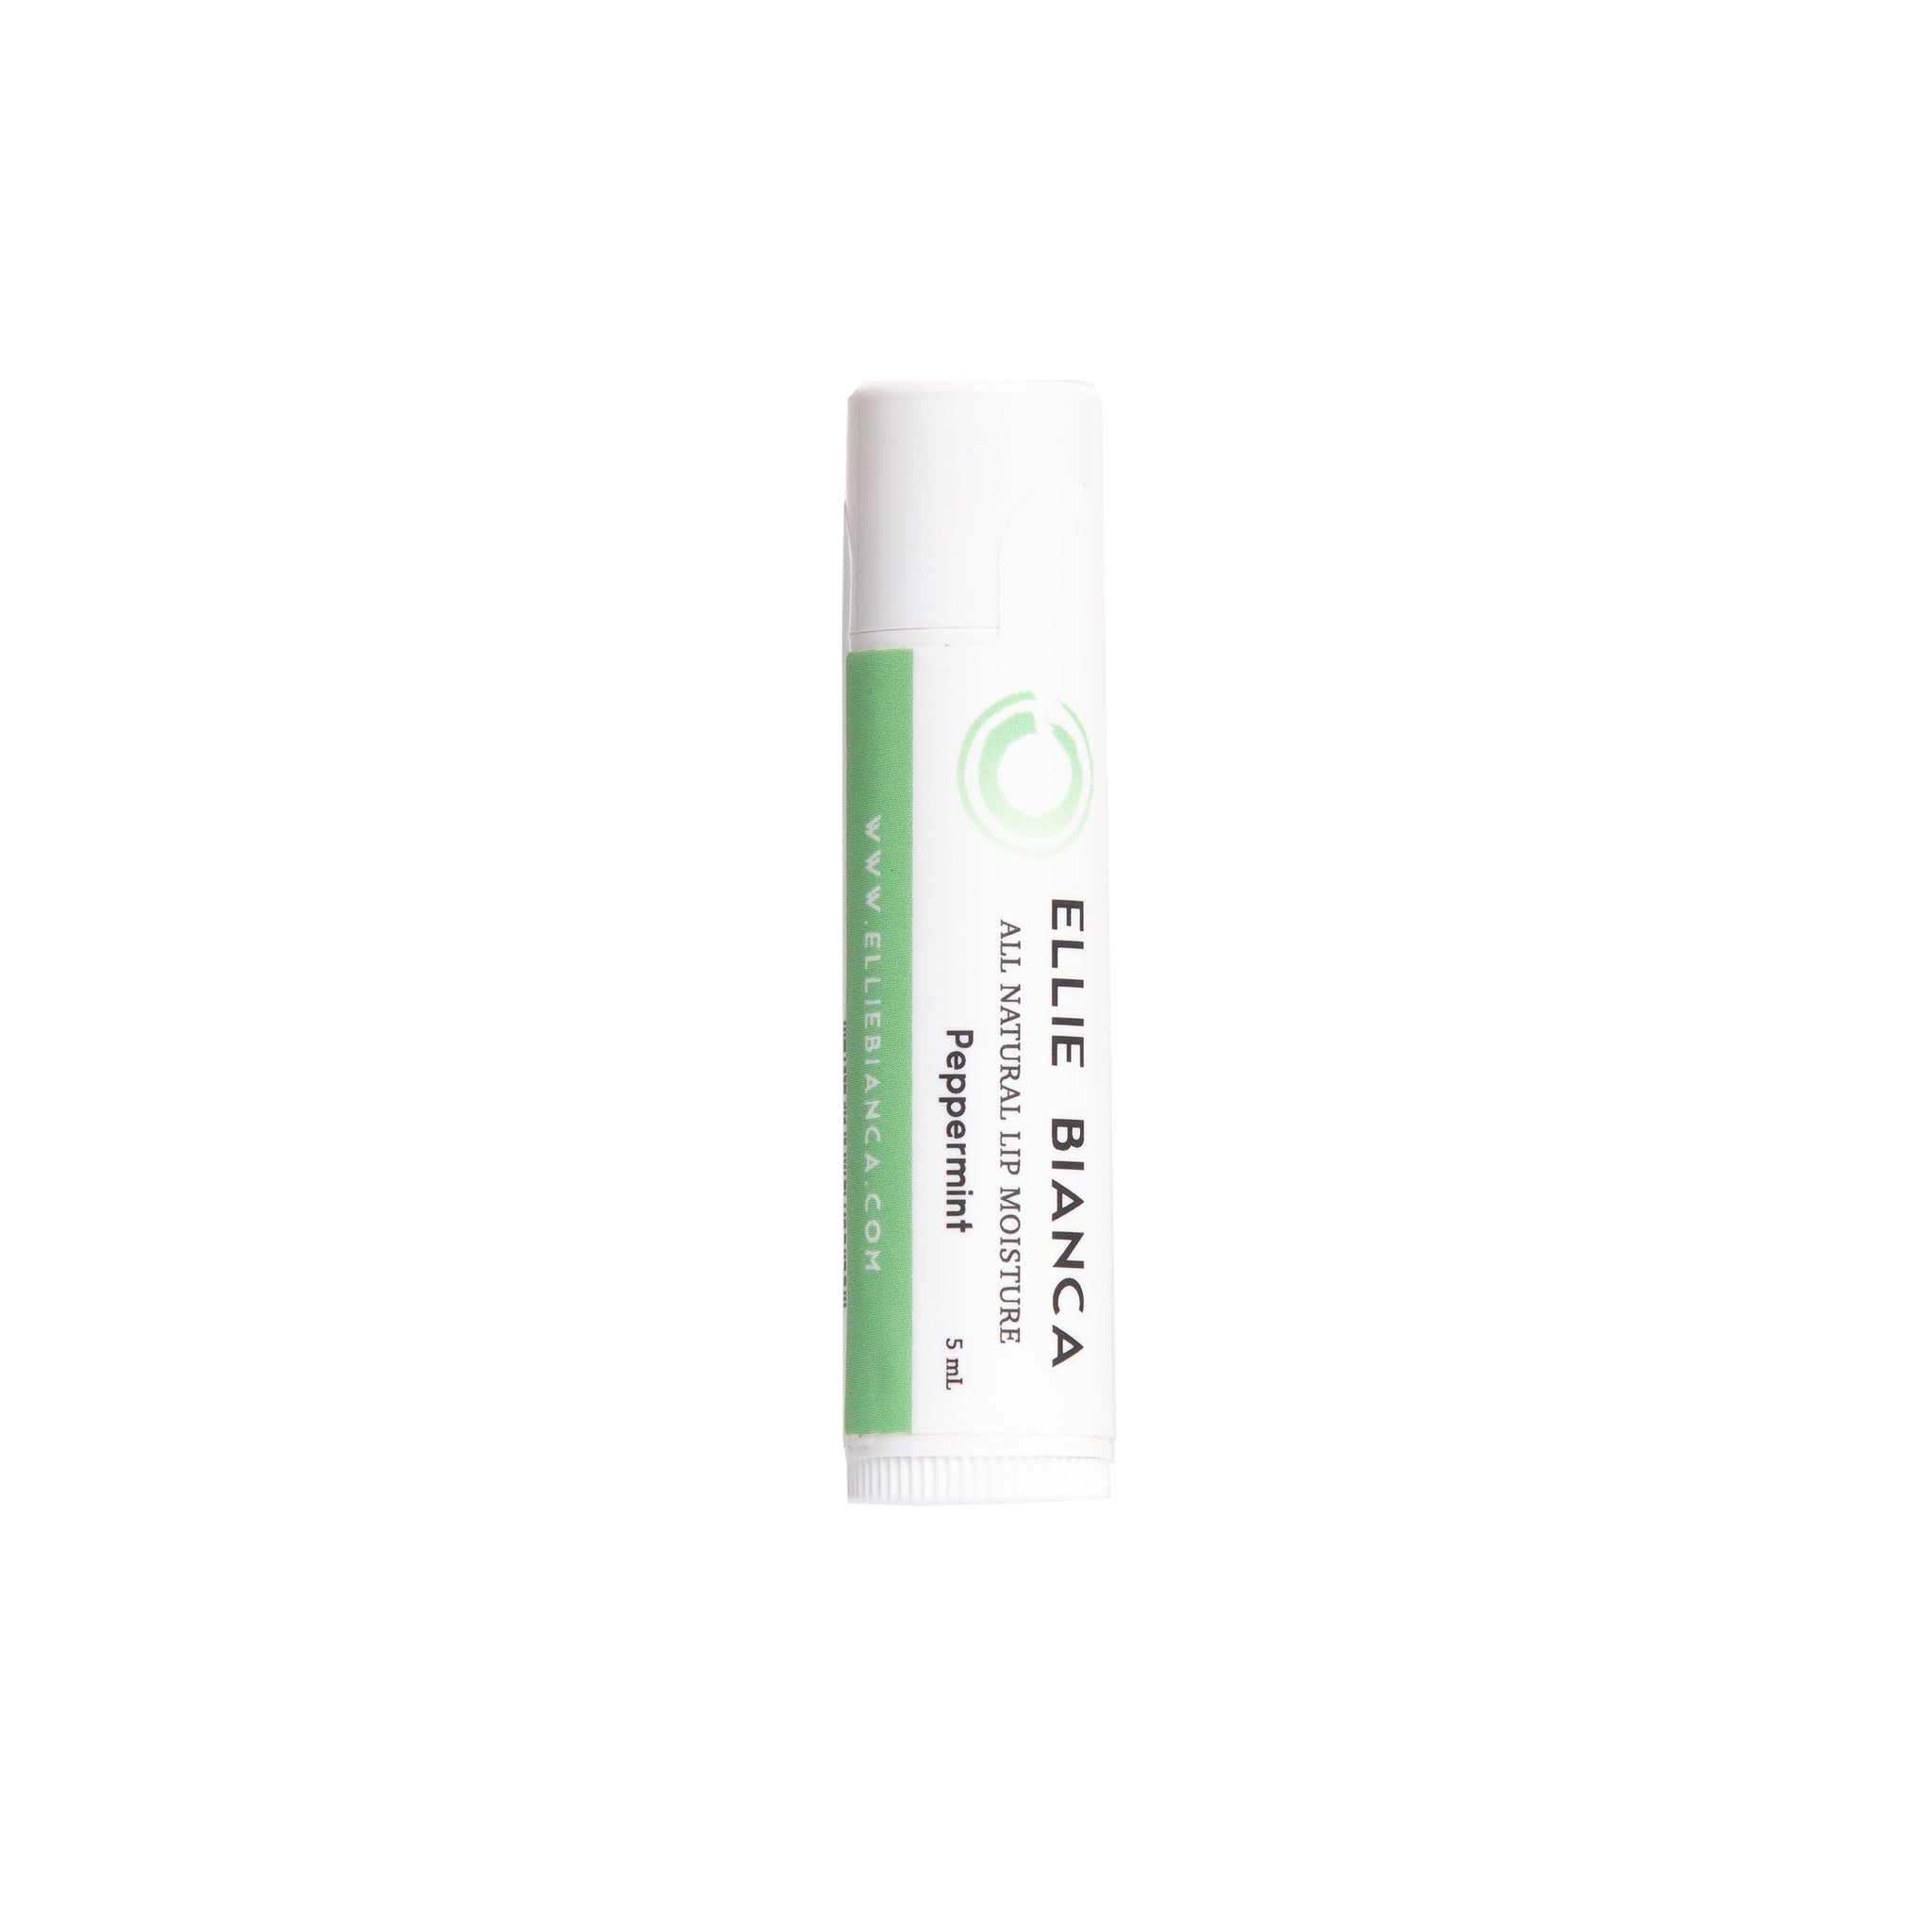 Peppermint - Lips Naturalle Tube